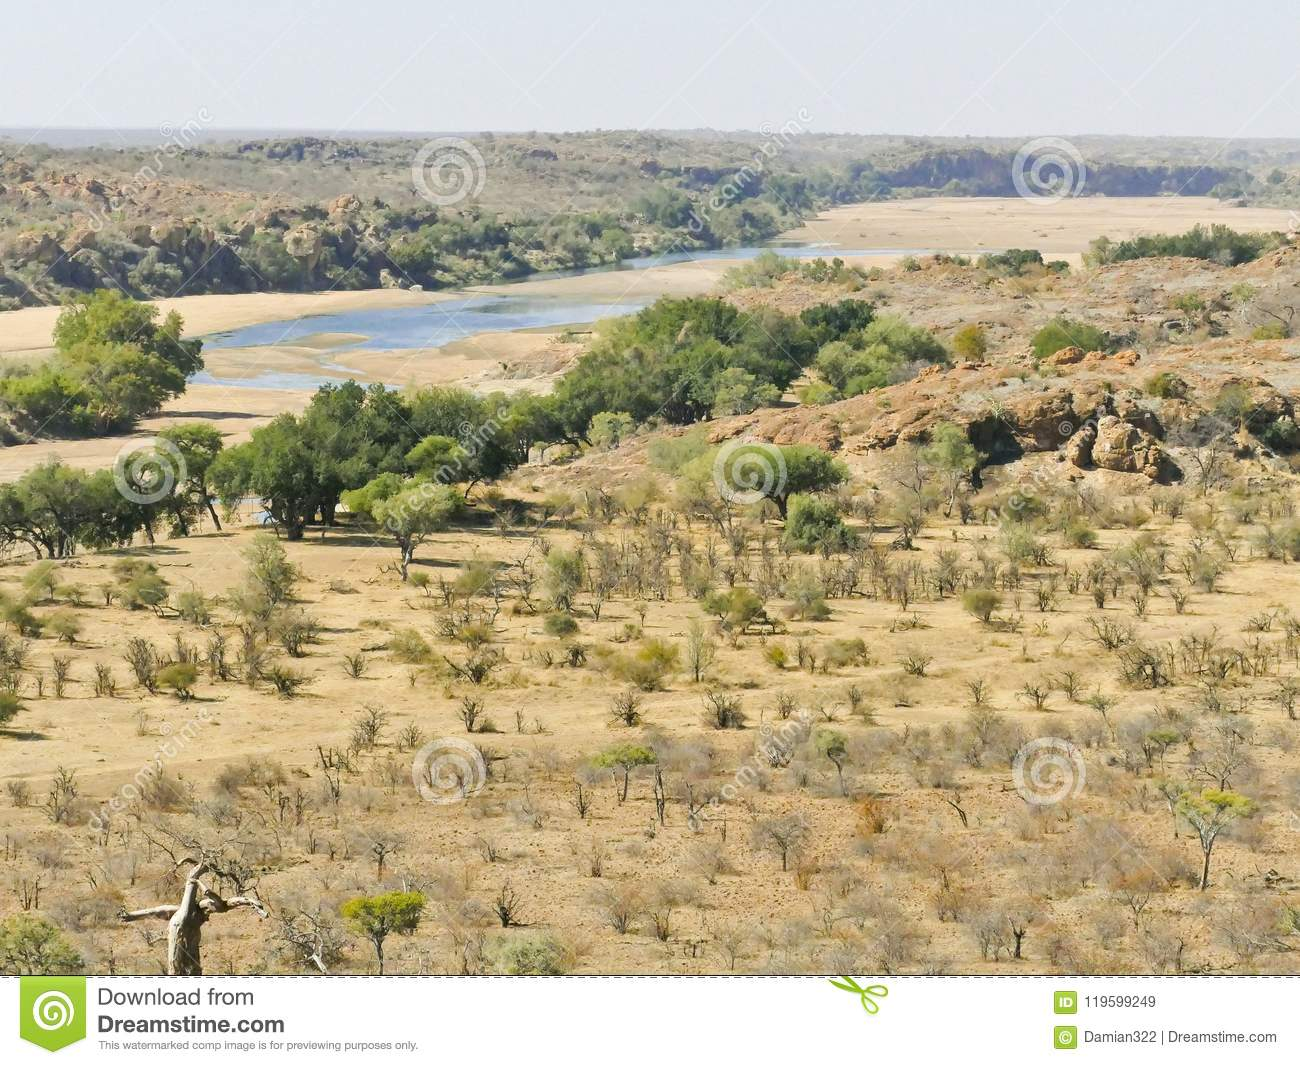 Limpopo river crossing the desert landscape of Mapungubwe Nation